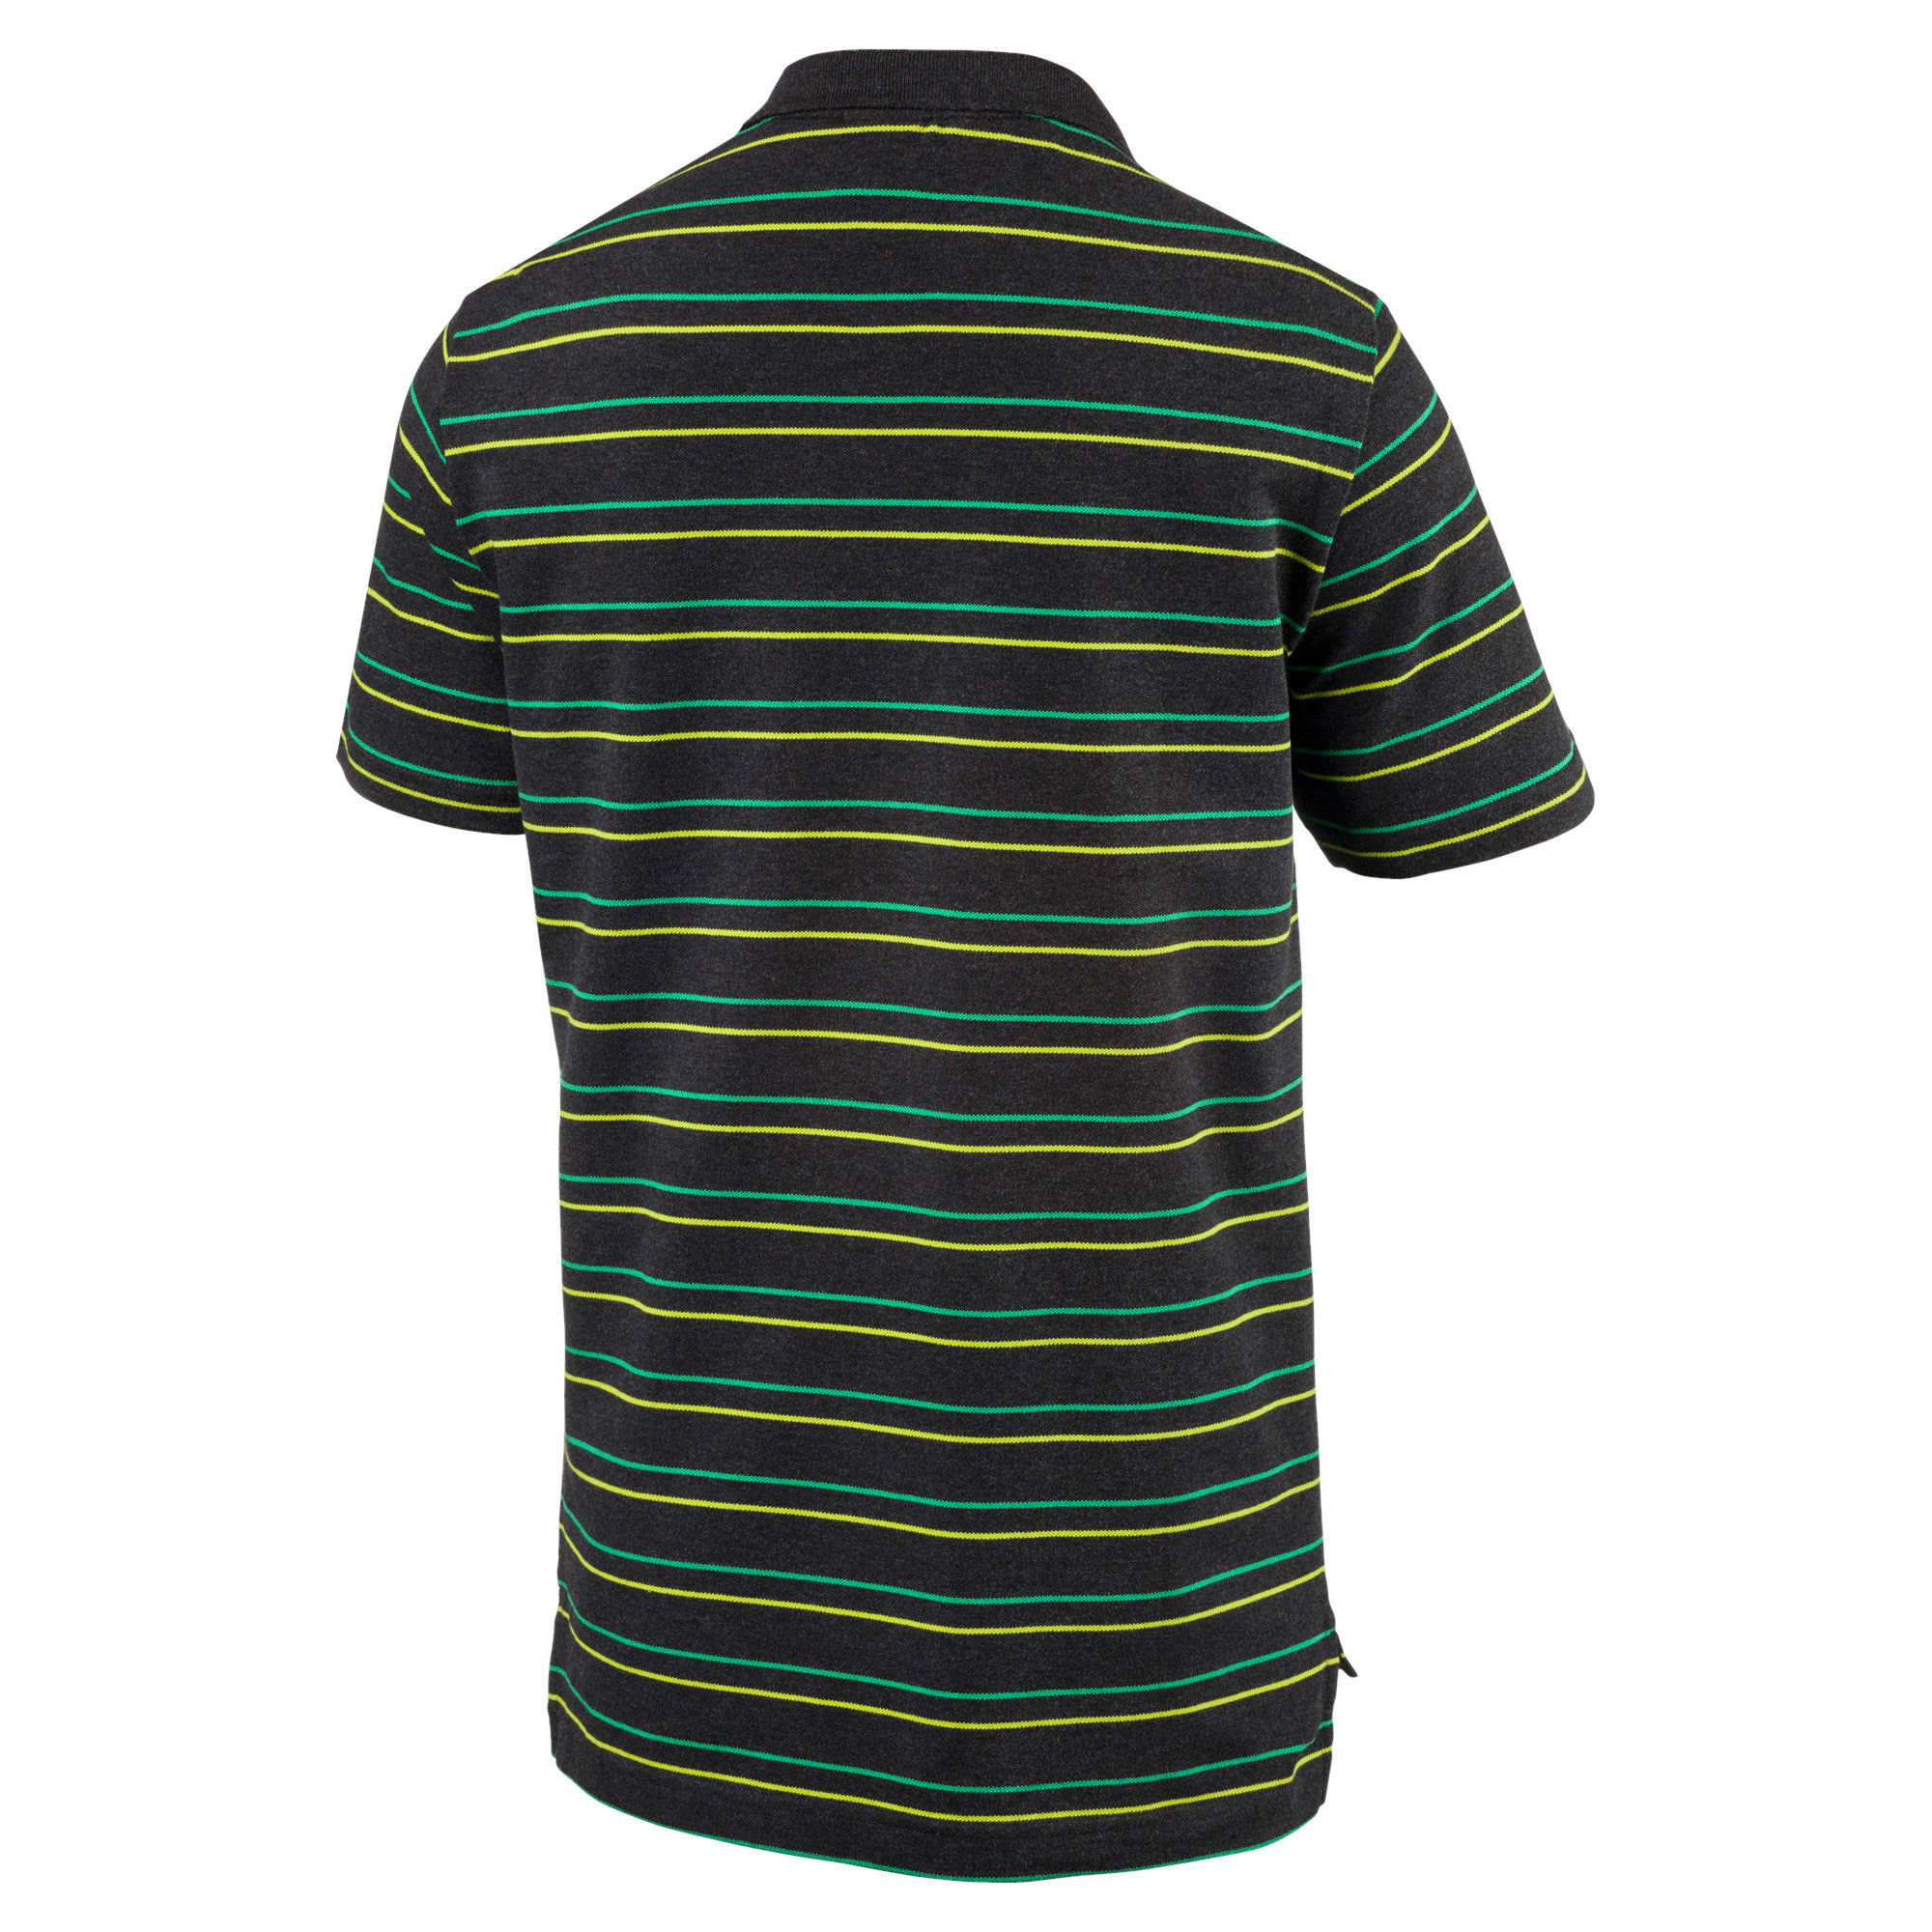 Thumbnail 5 of Sports Stripe Pique Polo, Dark Gray Heather, medium-IND